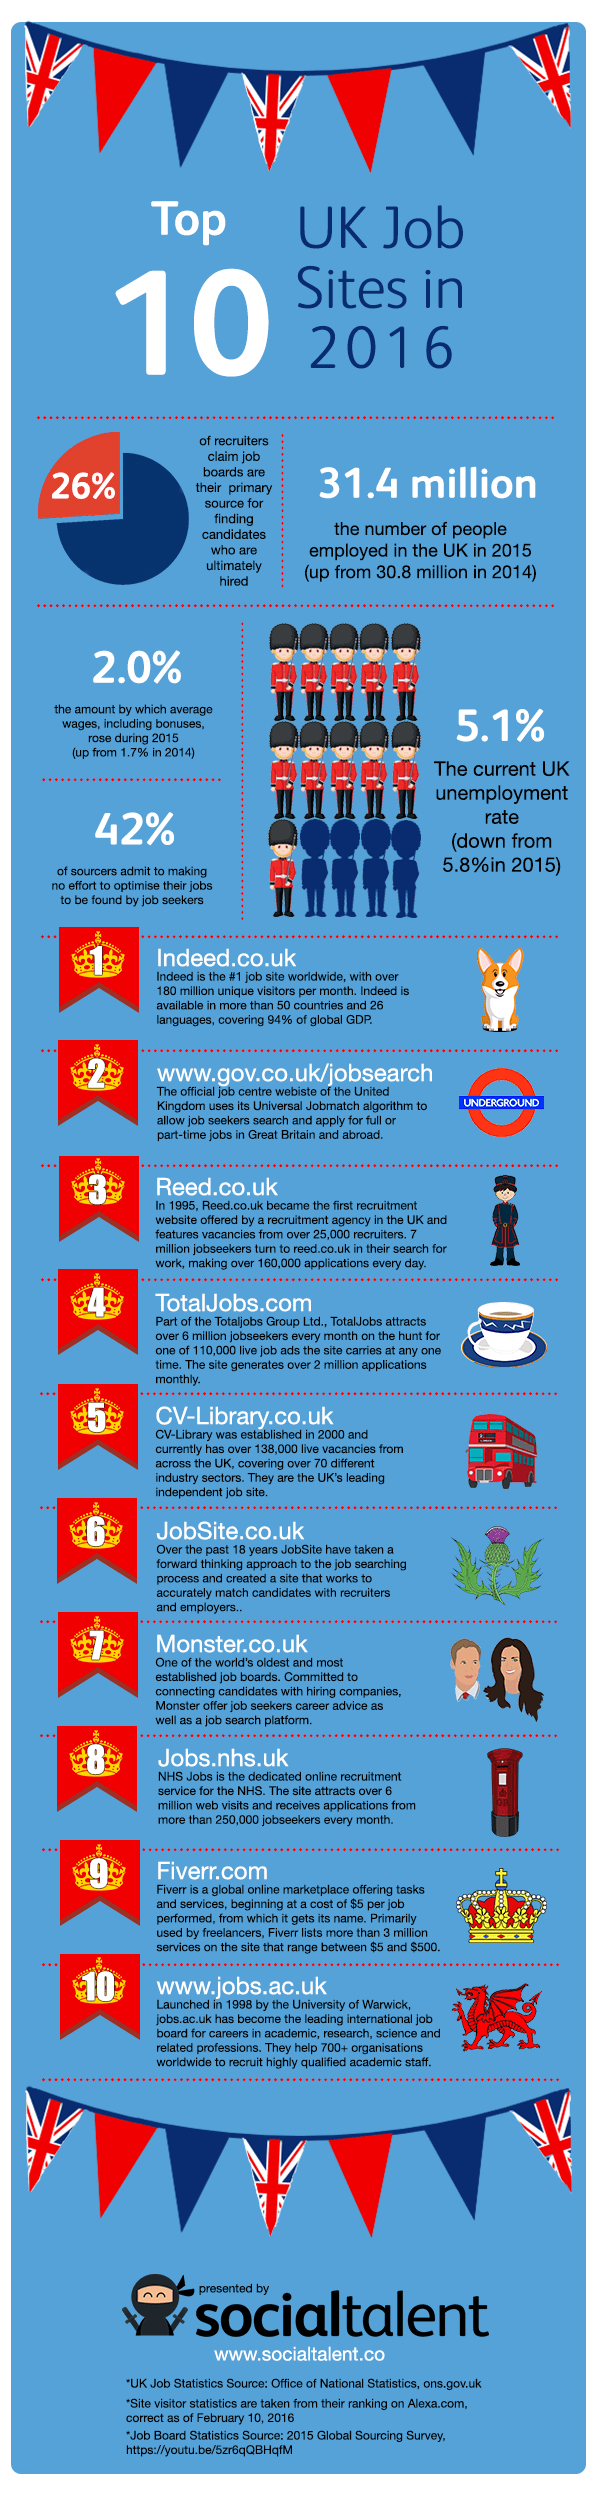 Best UK job sites